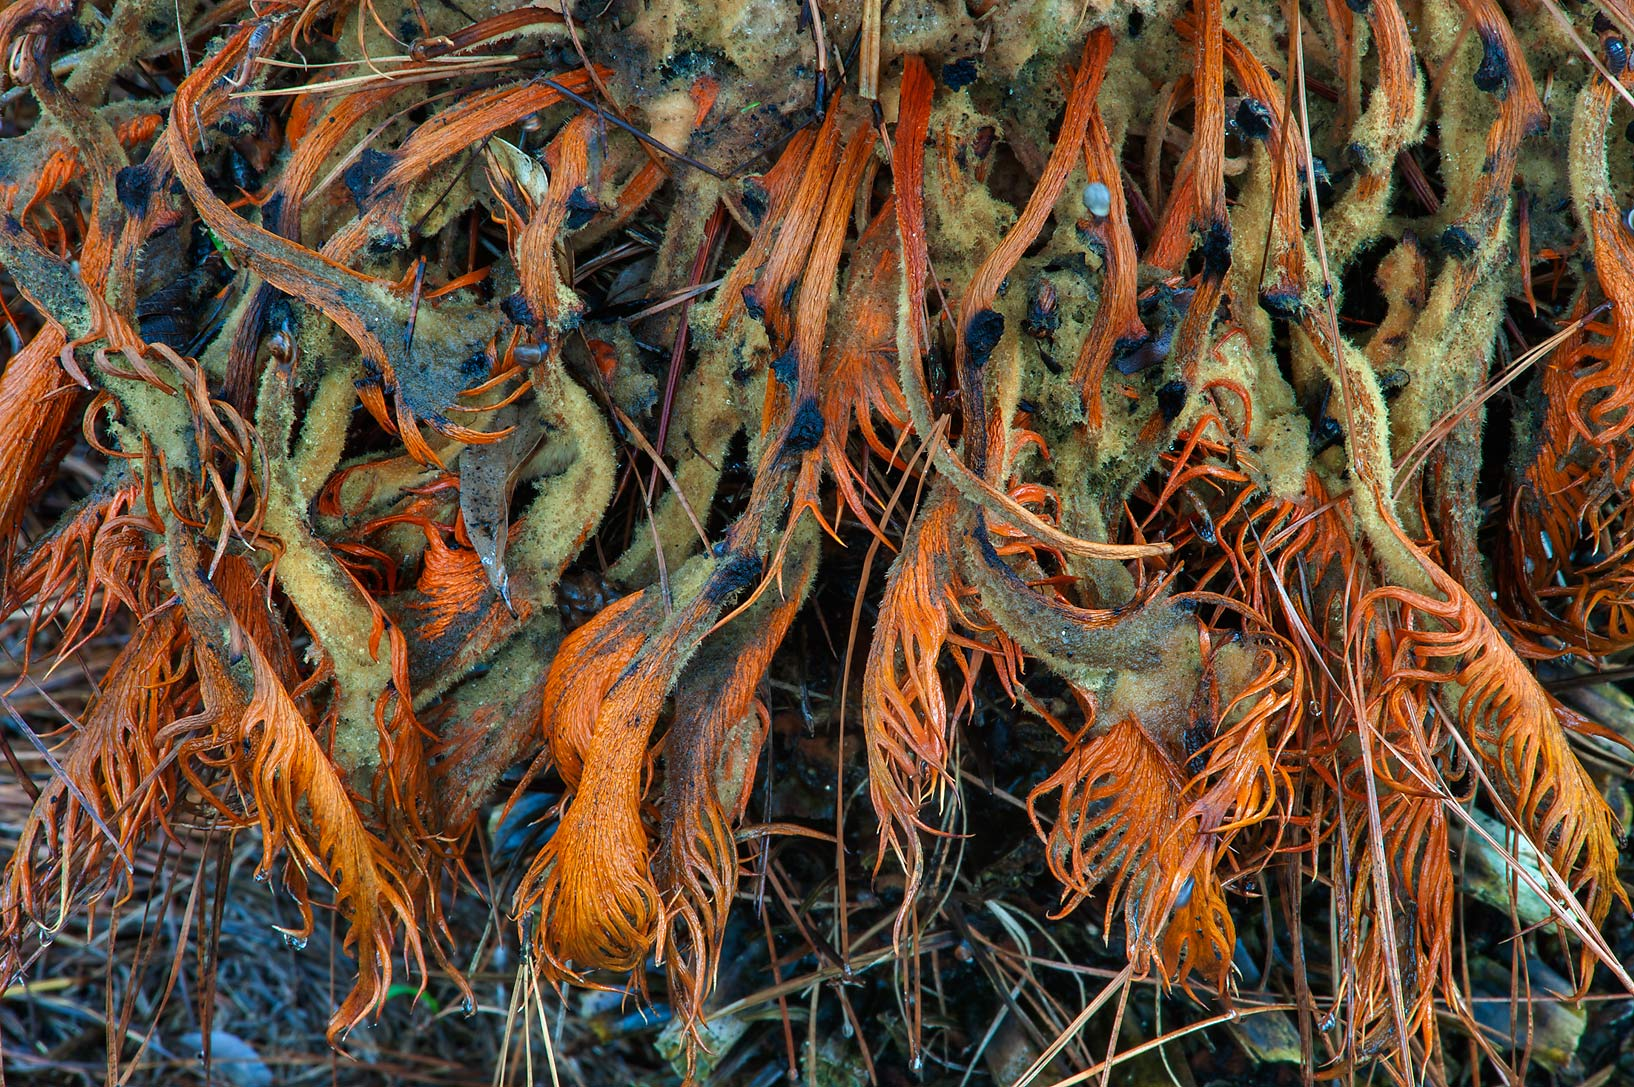 Dry leaves of sago palm in Mercer Arboretum and...Gardens. Humble (Houston area), Texas